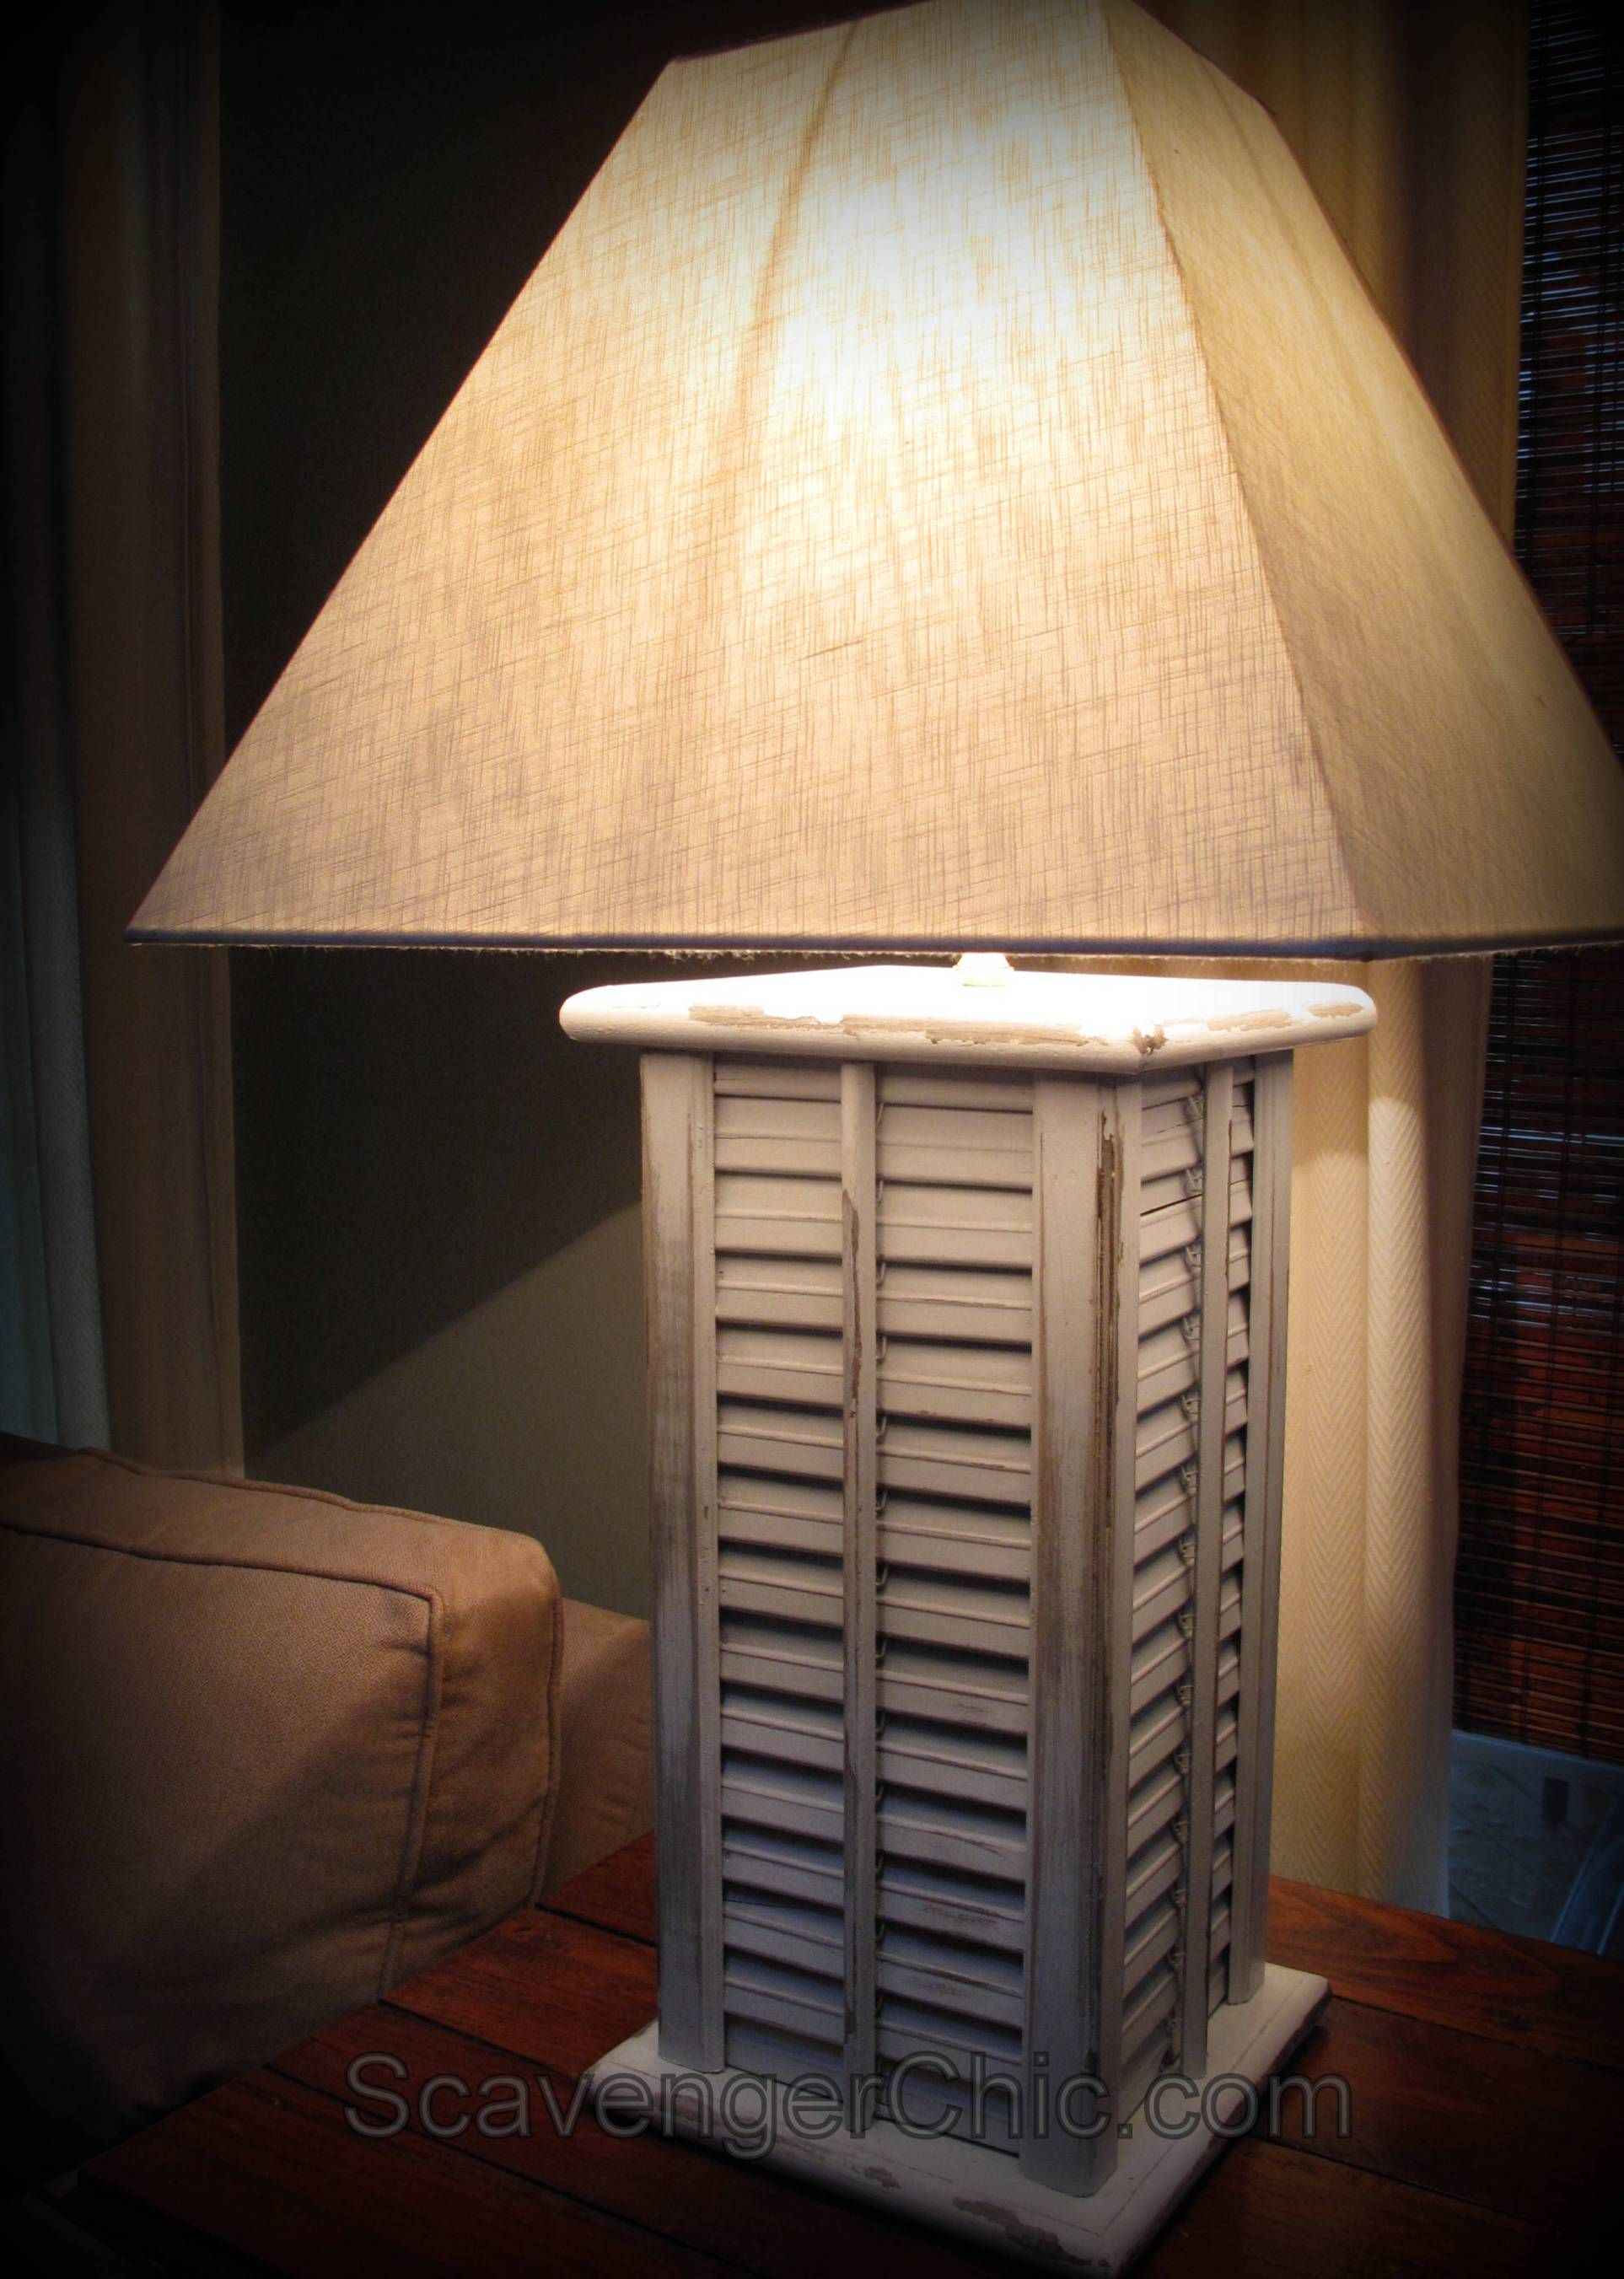 Upcycled, Recycled Shutters Lamp diy | DIY Ideas | Pinterest | DIY ...